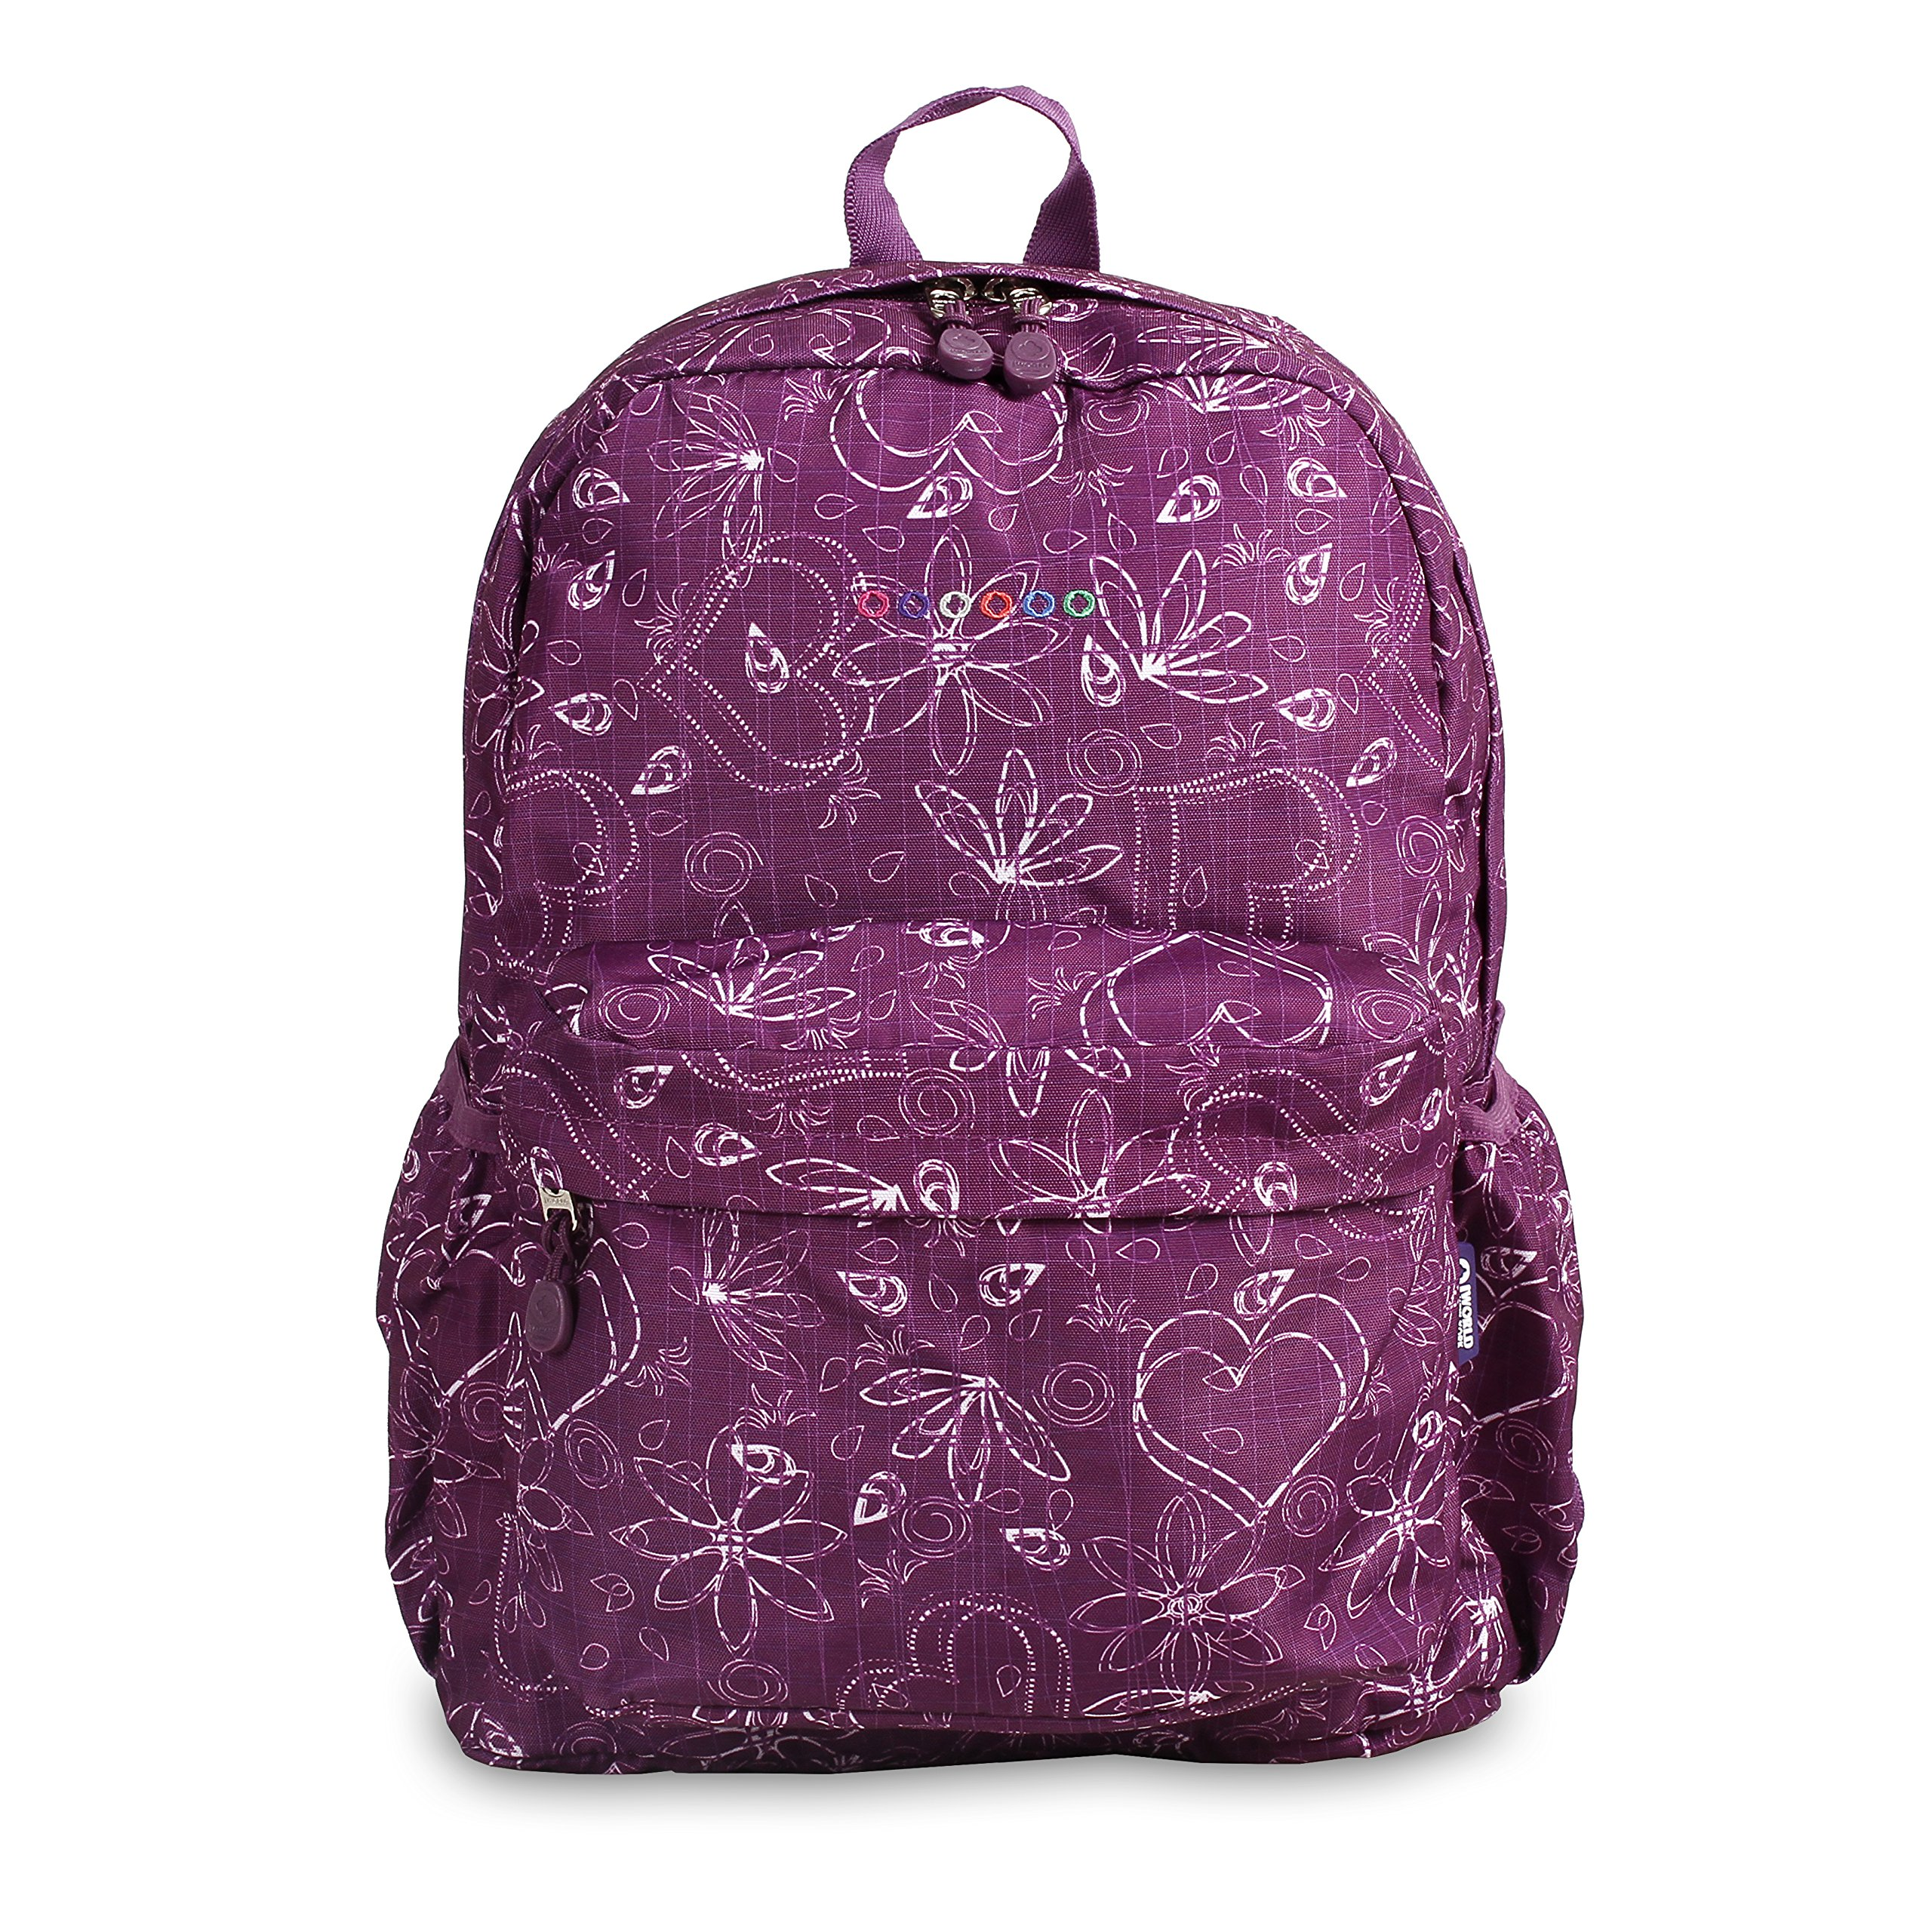 J World New York Oz Backpack, Love Purple by J World New York (Image #3)